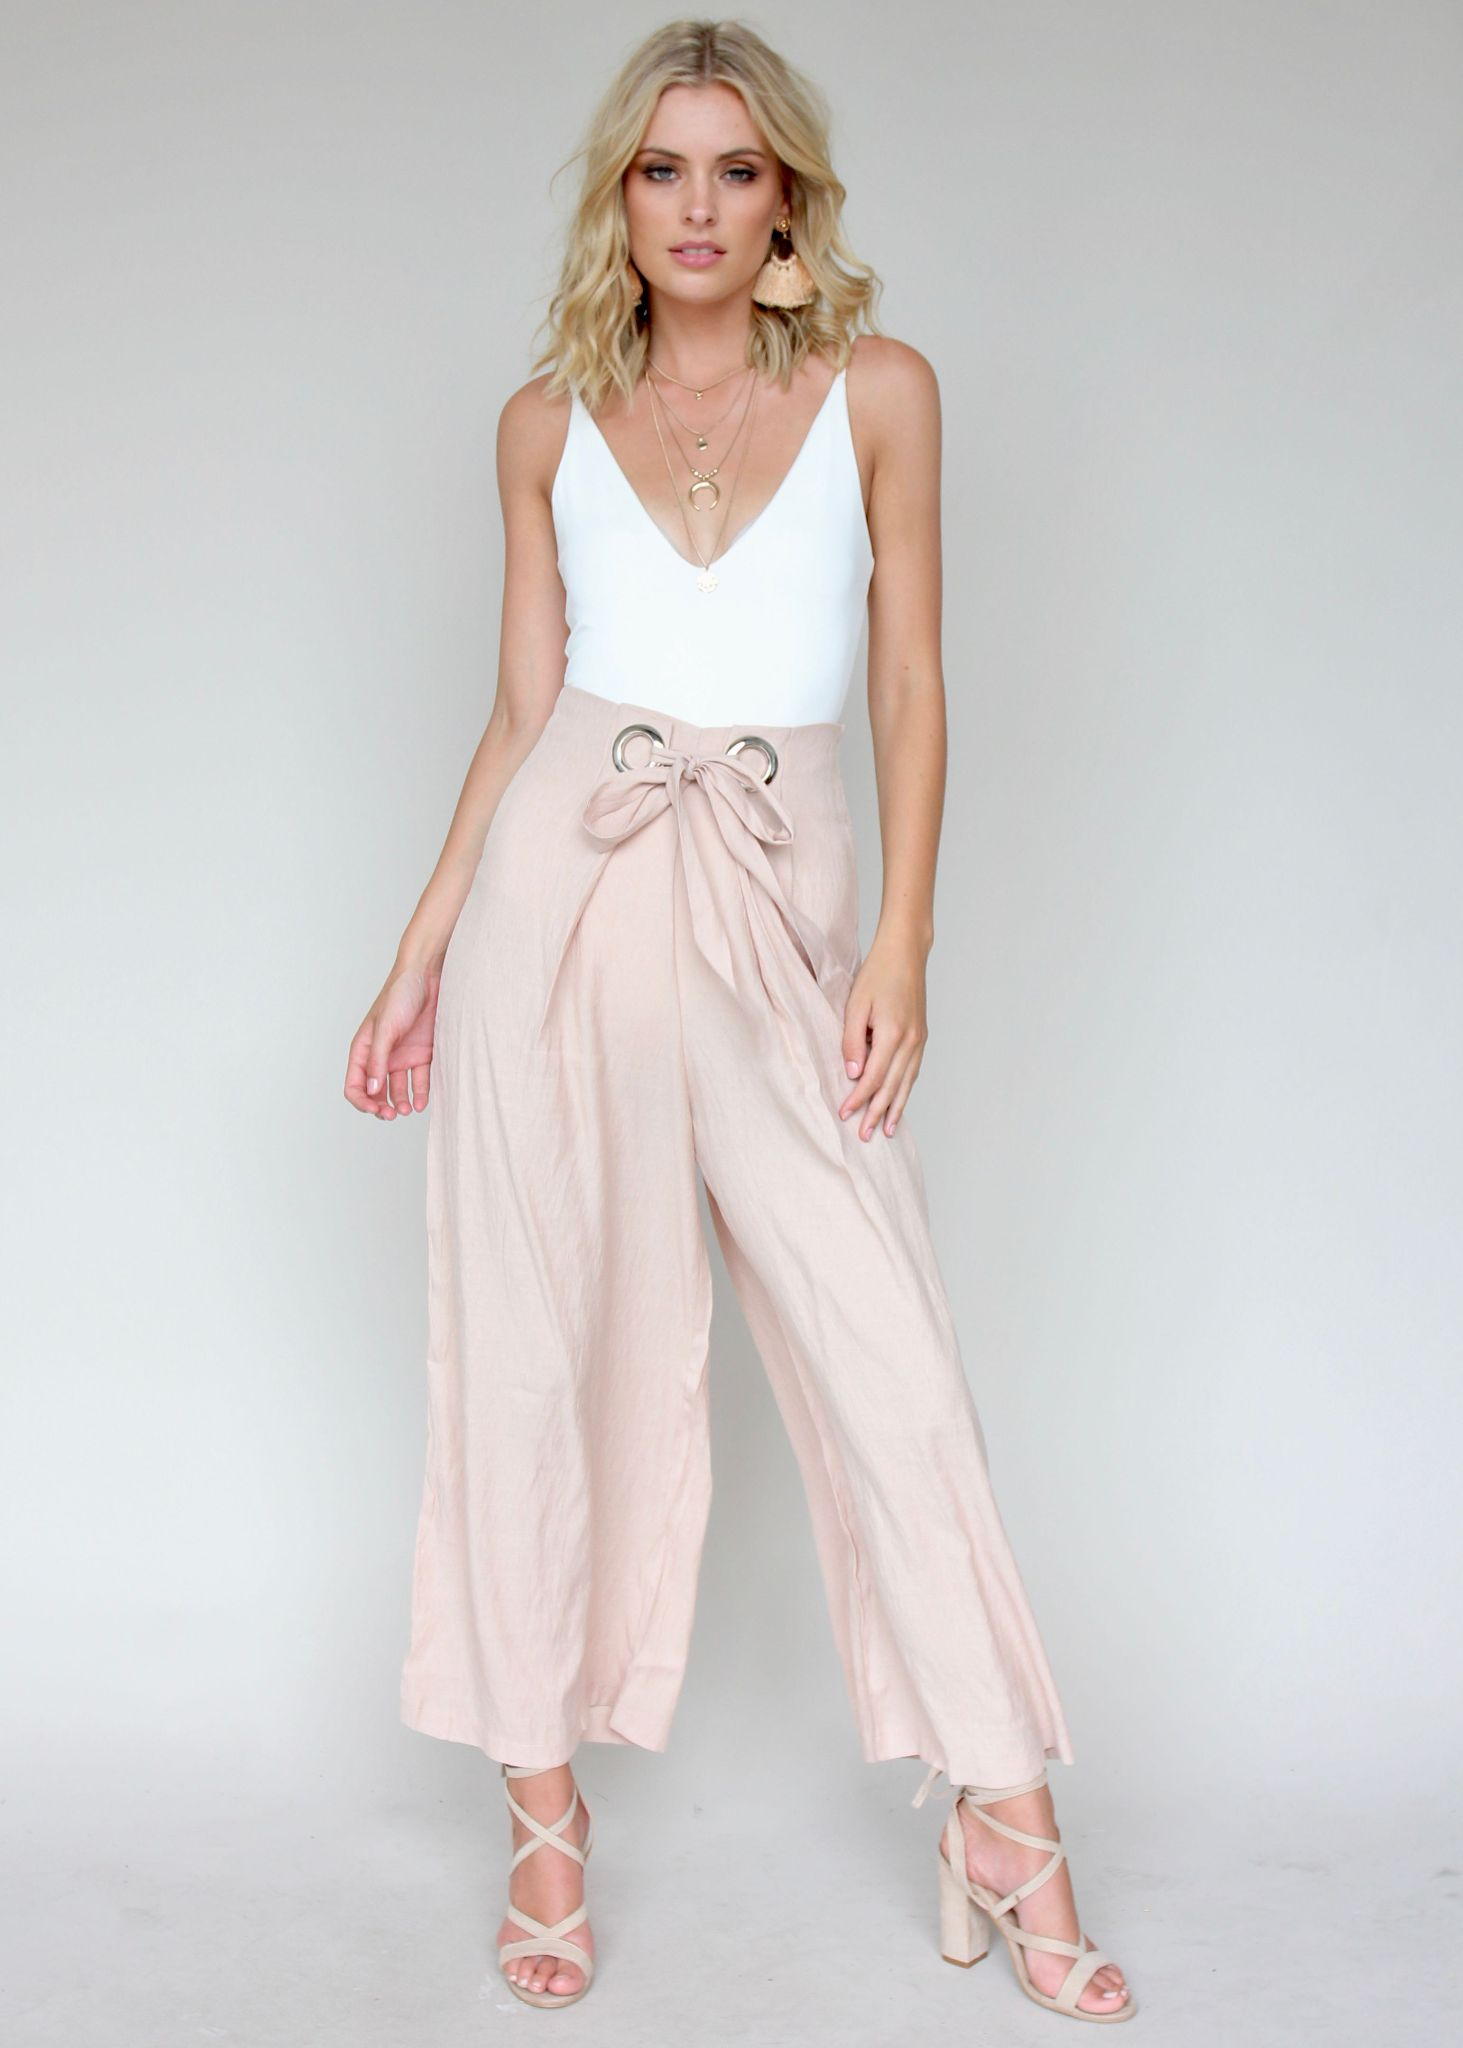 Locked Heart Pants - Mocha